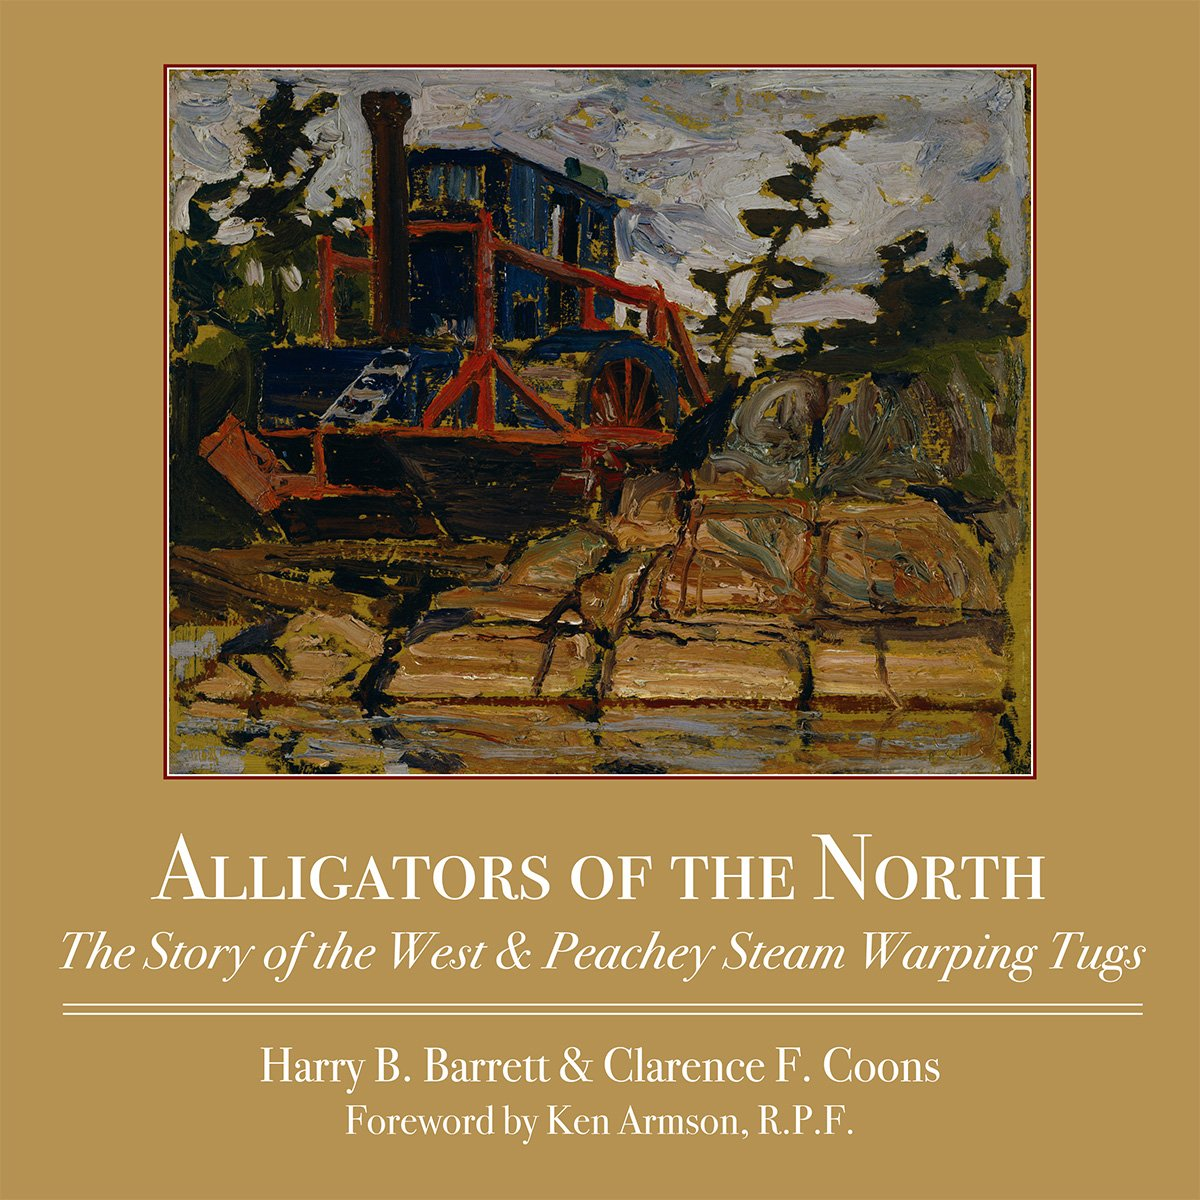 Download Alligators of the North: The Story of the West & Peachey Steam Warping Tugs ebook